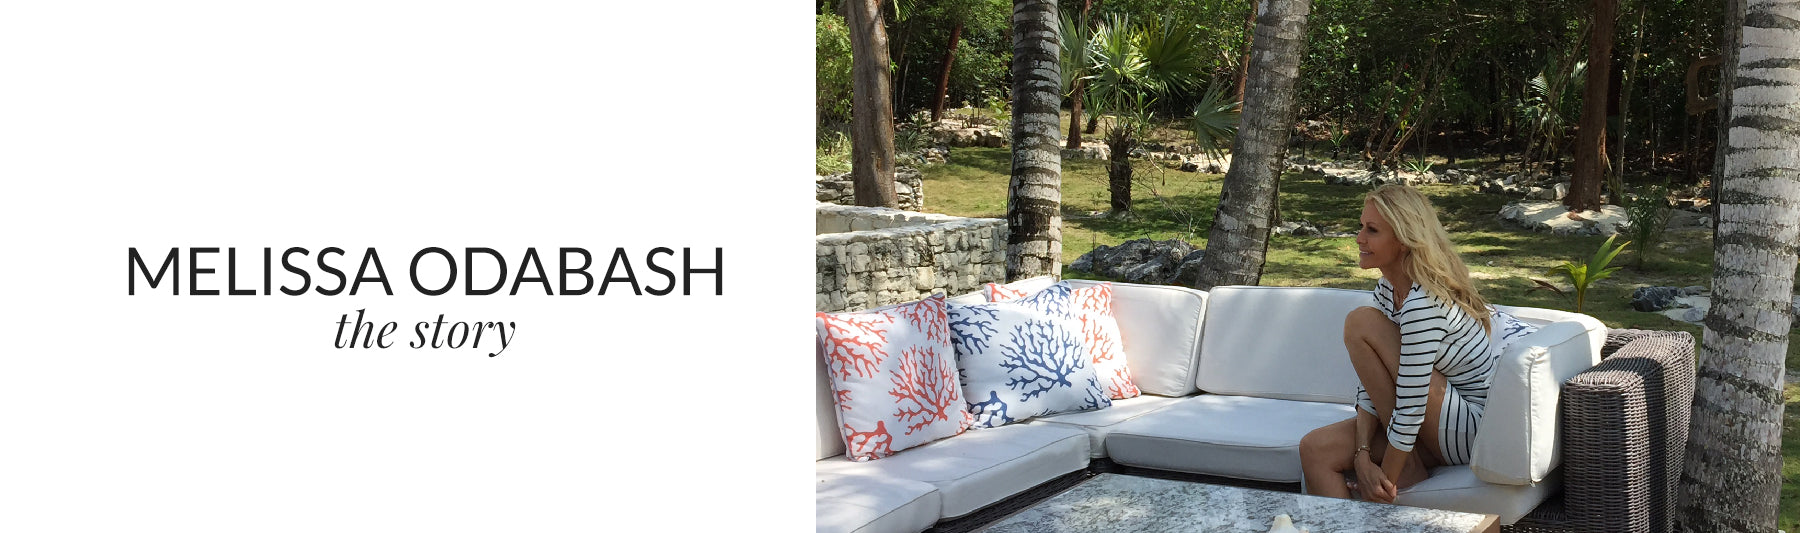 f5e193c034 As a former swimwear model who lived and worked in Italy for many years,  Melissa Odabash has an innate sense of what women want from their swimwear  ...